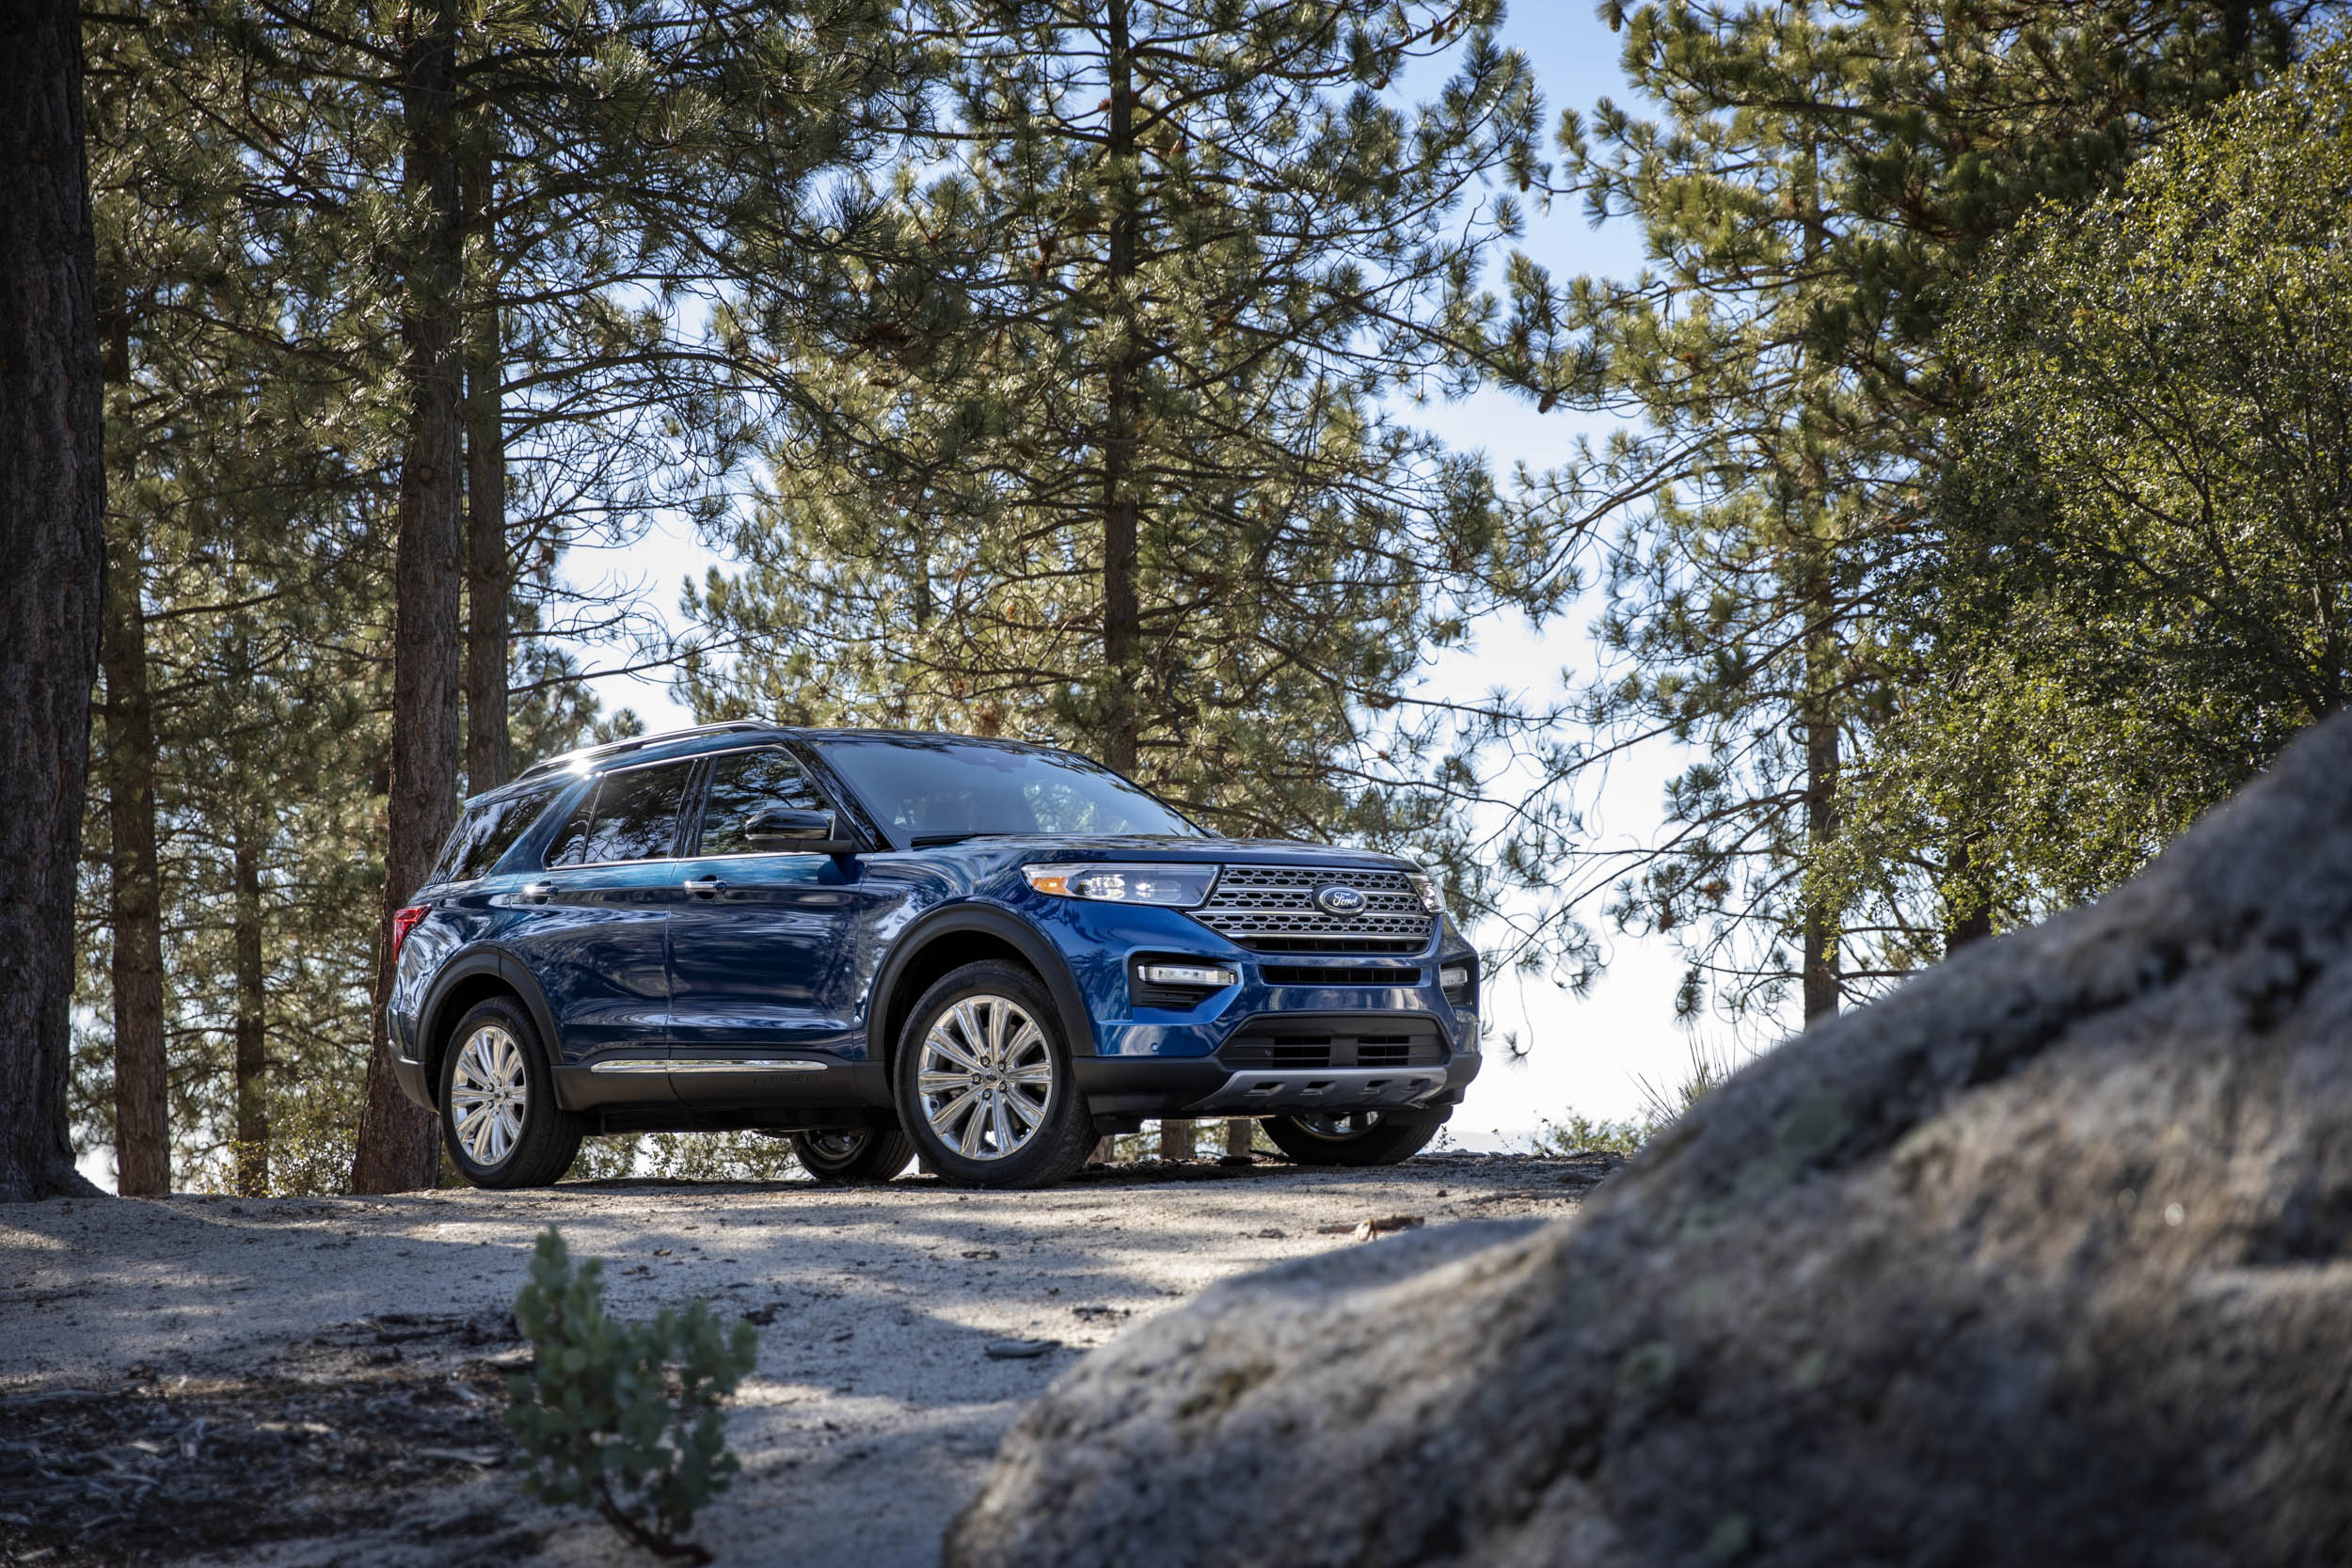 2020 Ford Explorer Limited in the woods